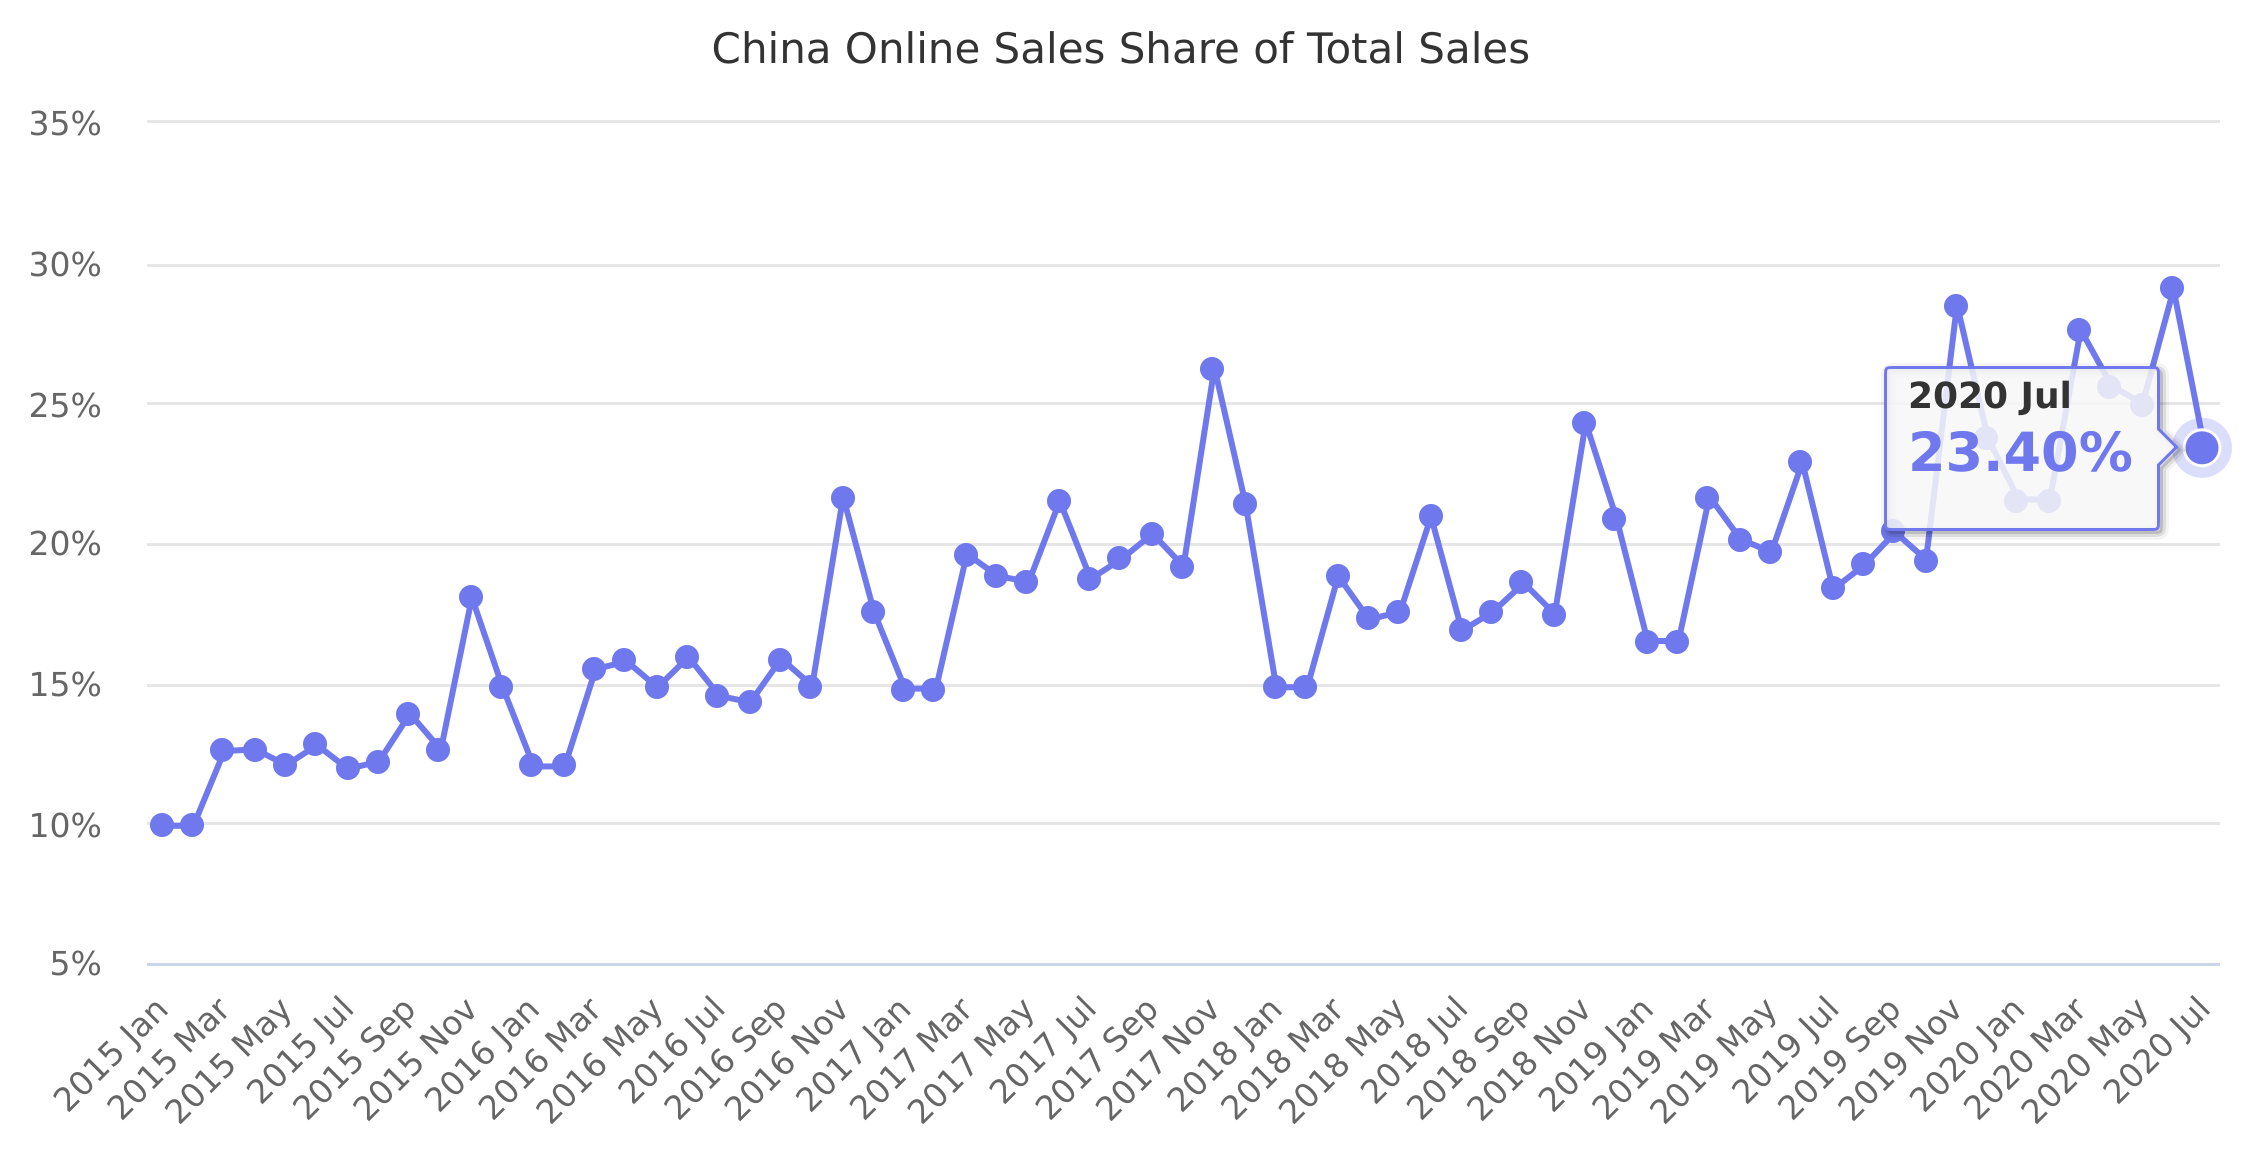 China Online Sales Share of Total Sales 2015-2017